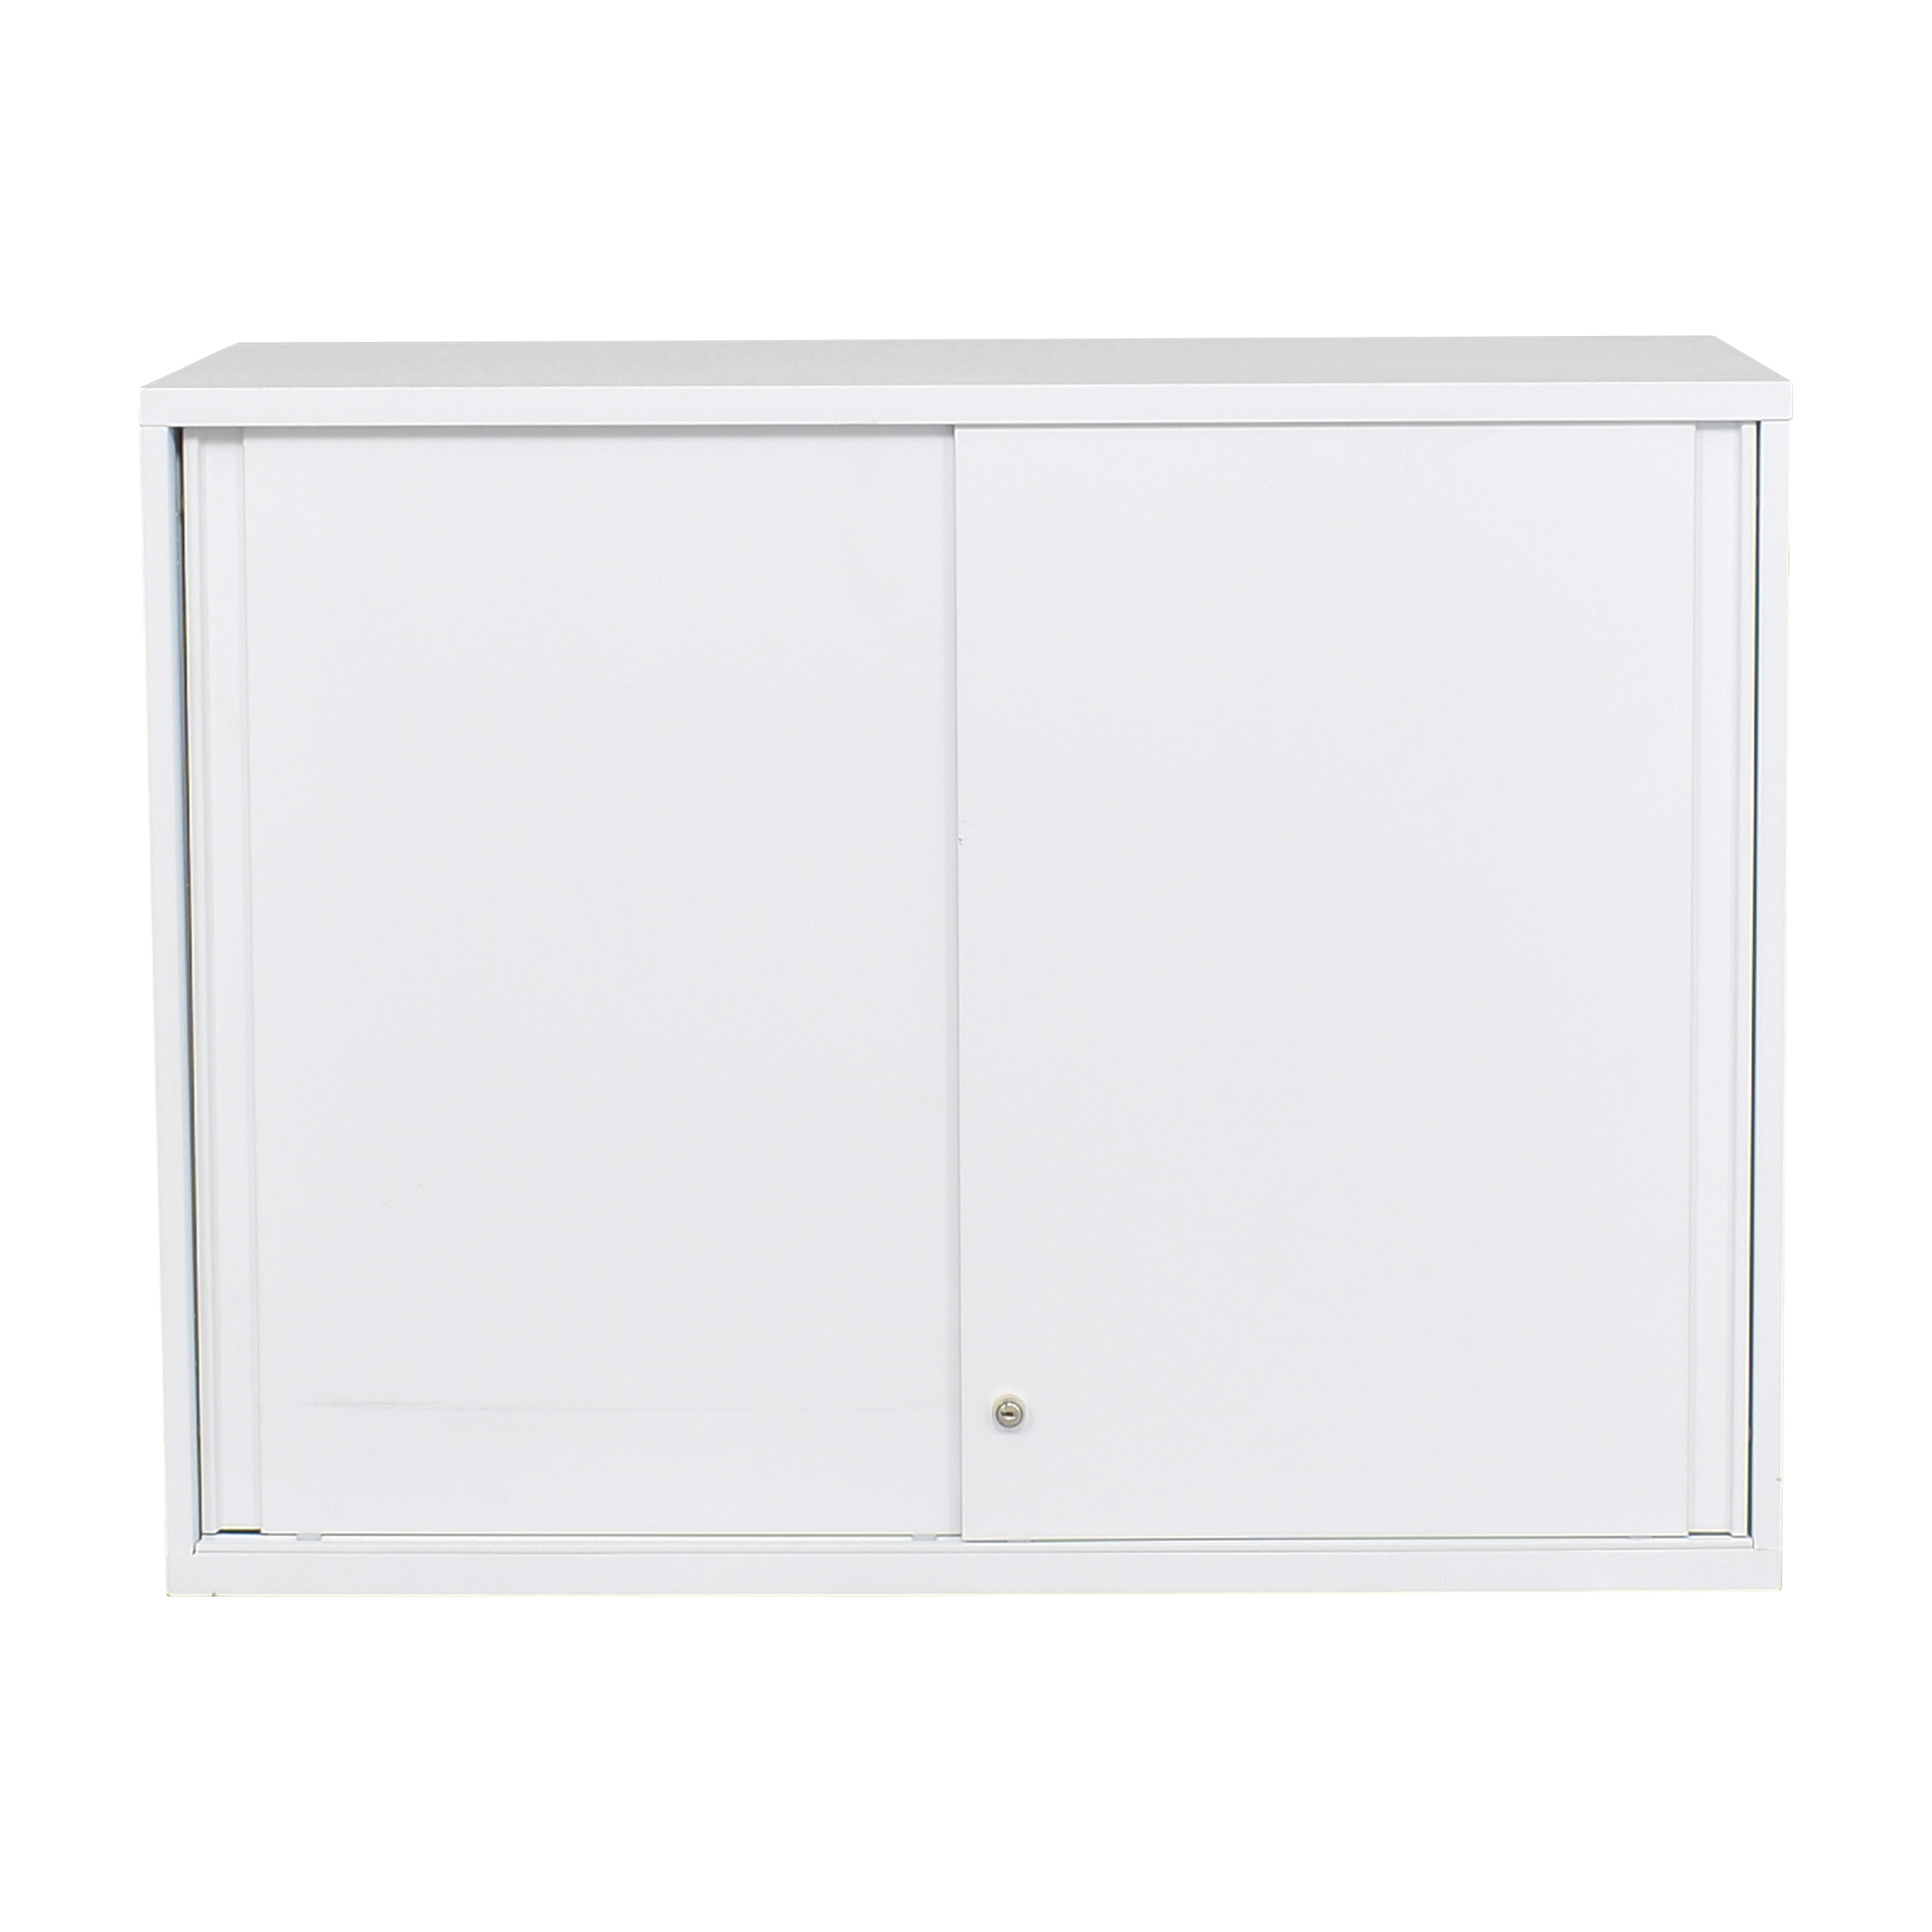 Steelcase Two Door Cabinet / Cabinets & Sideboards